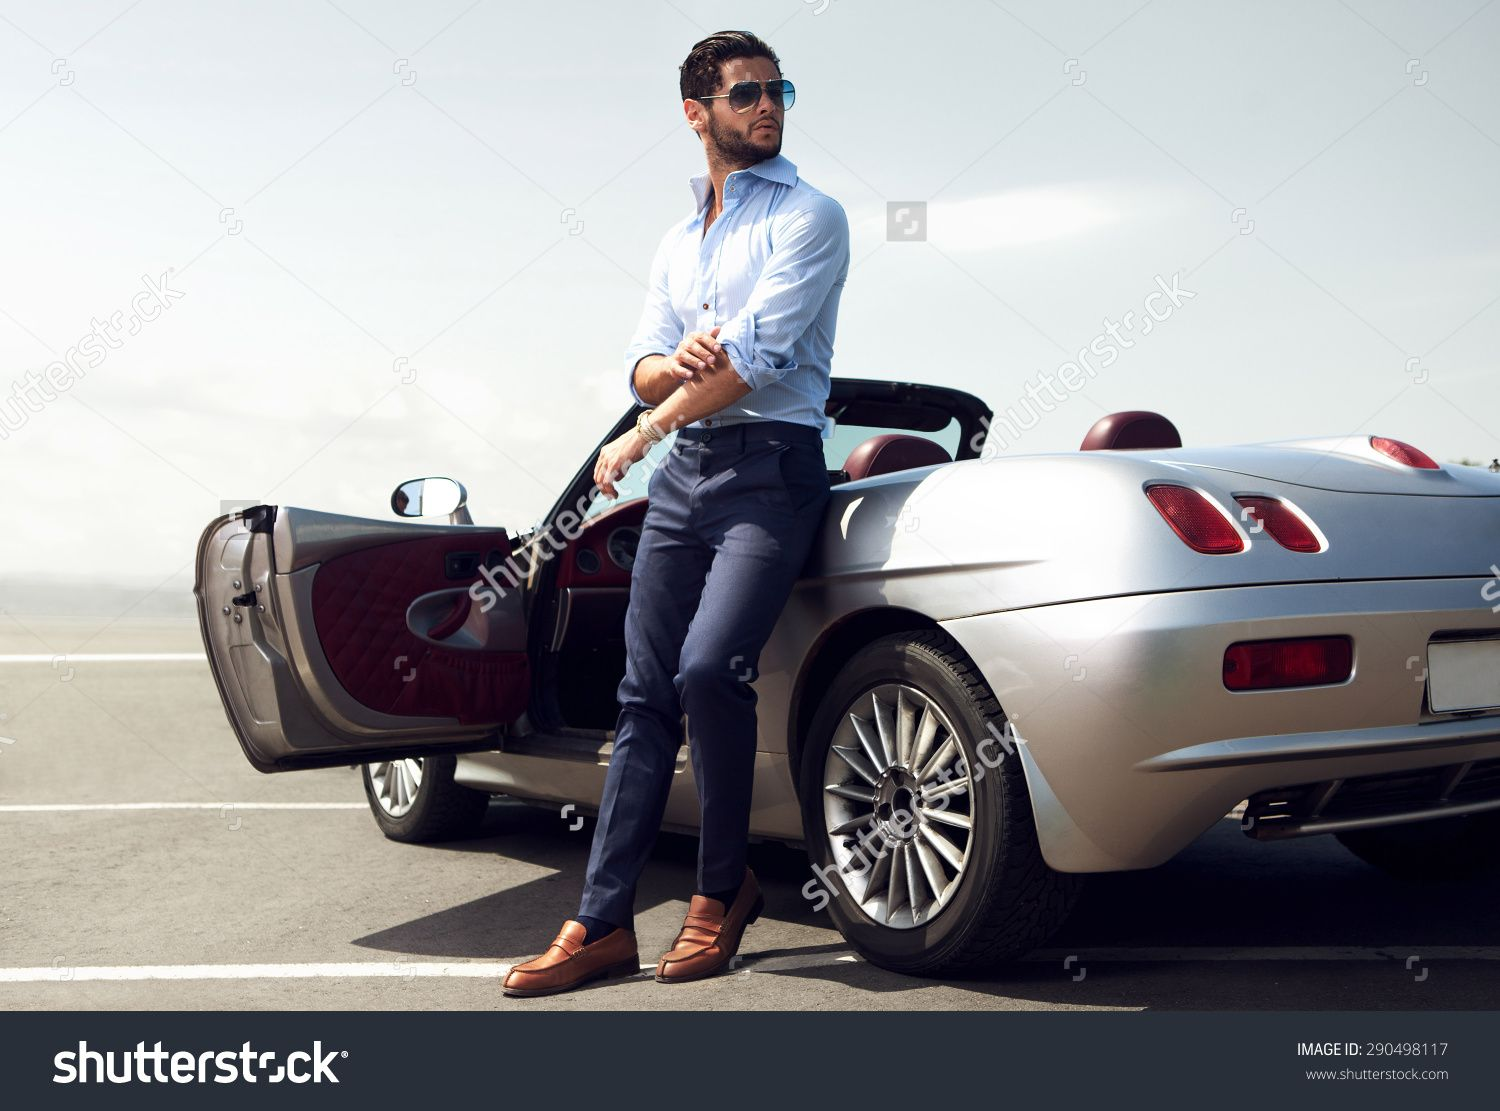 Pin by Adam Amin on Car Lifestyle Shoot | Luxury life ...